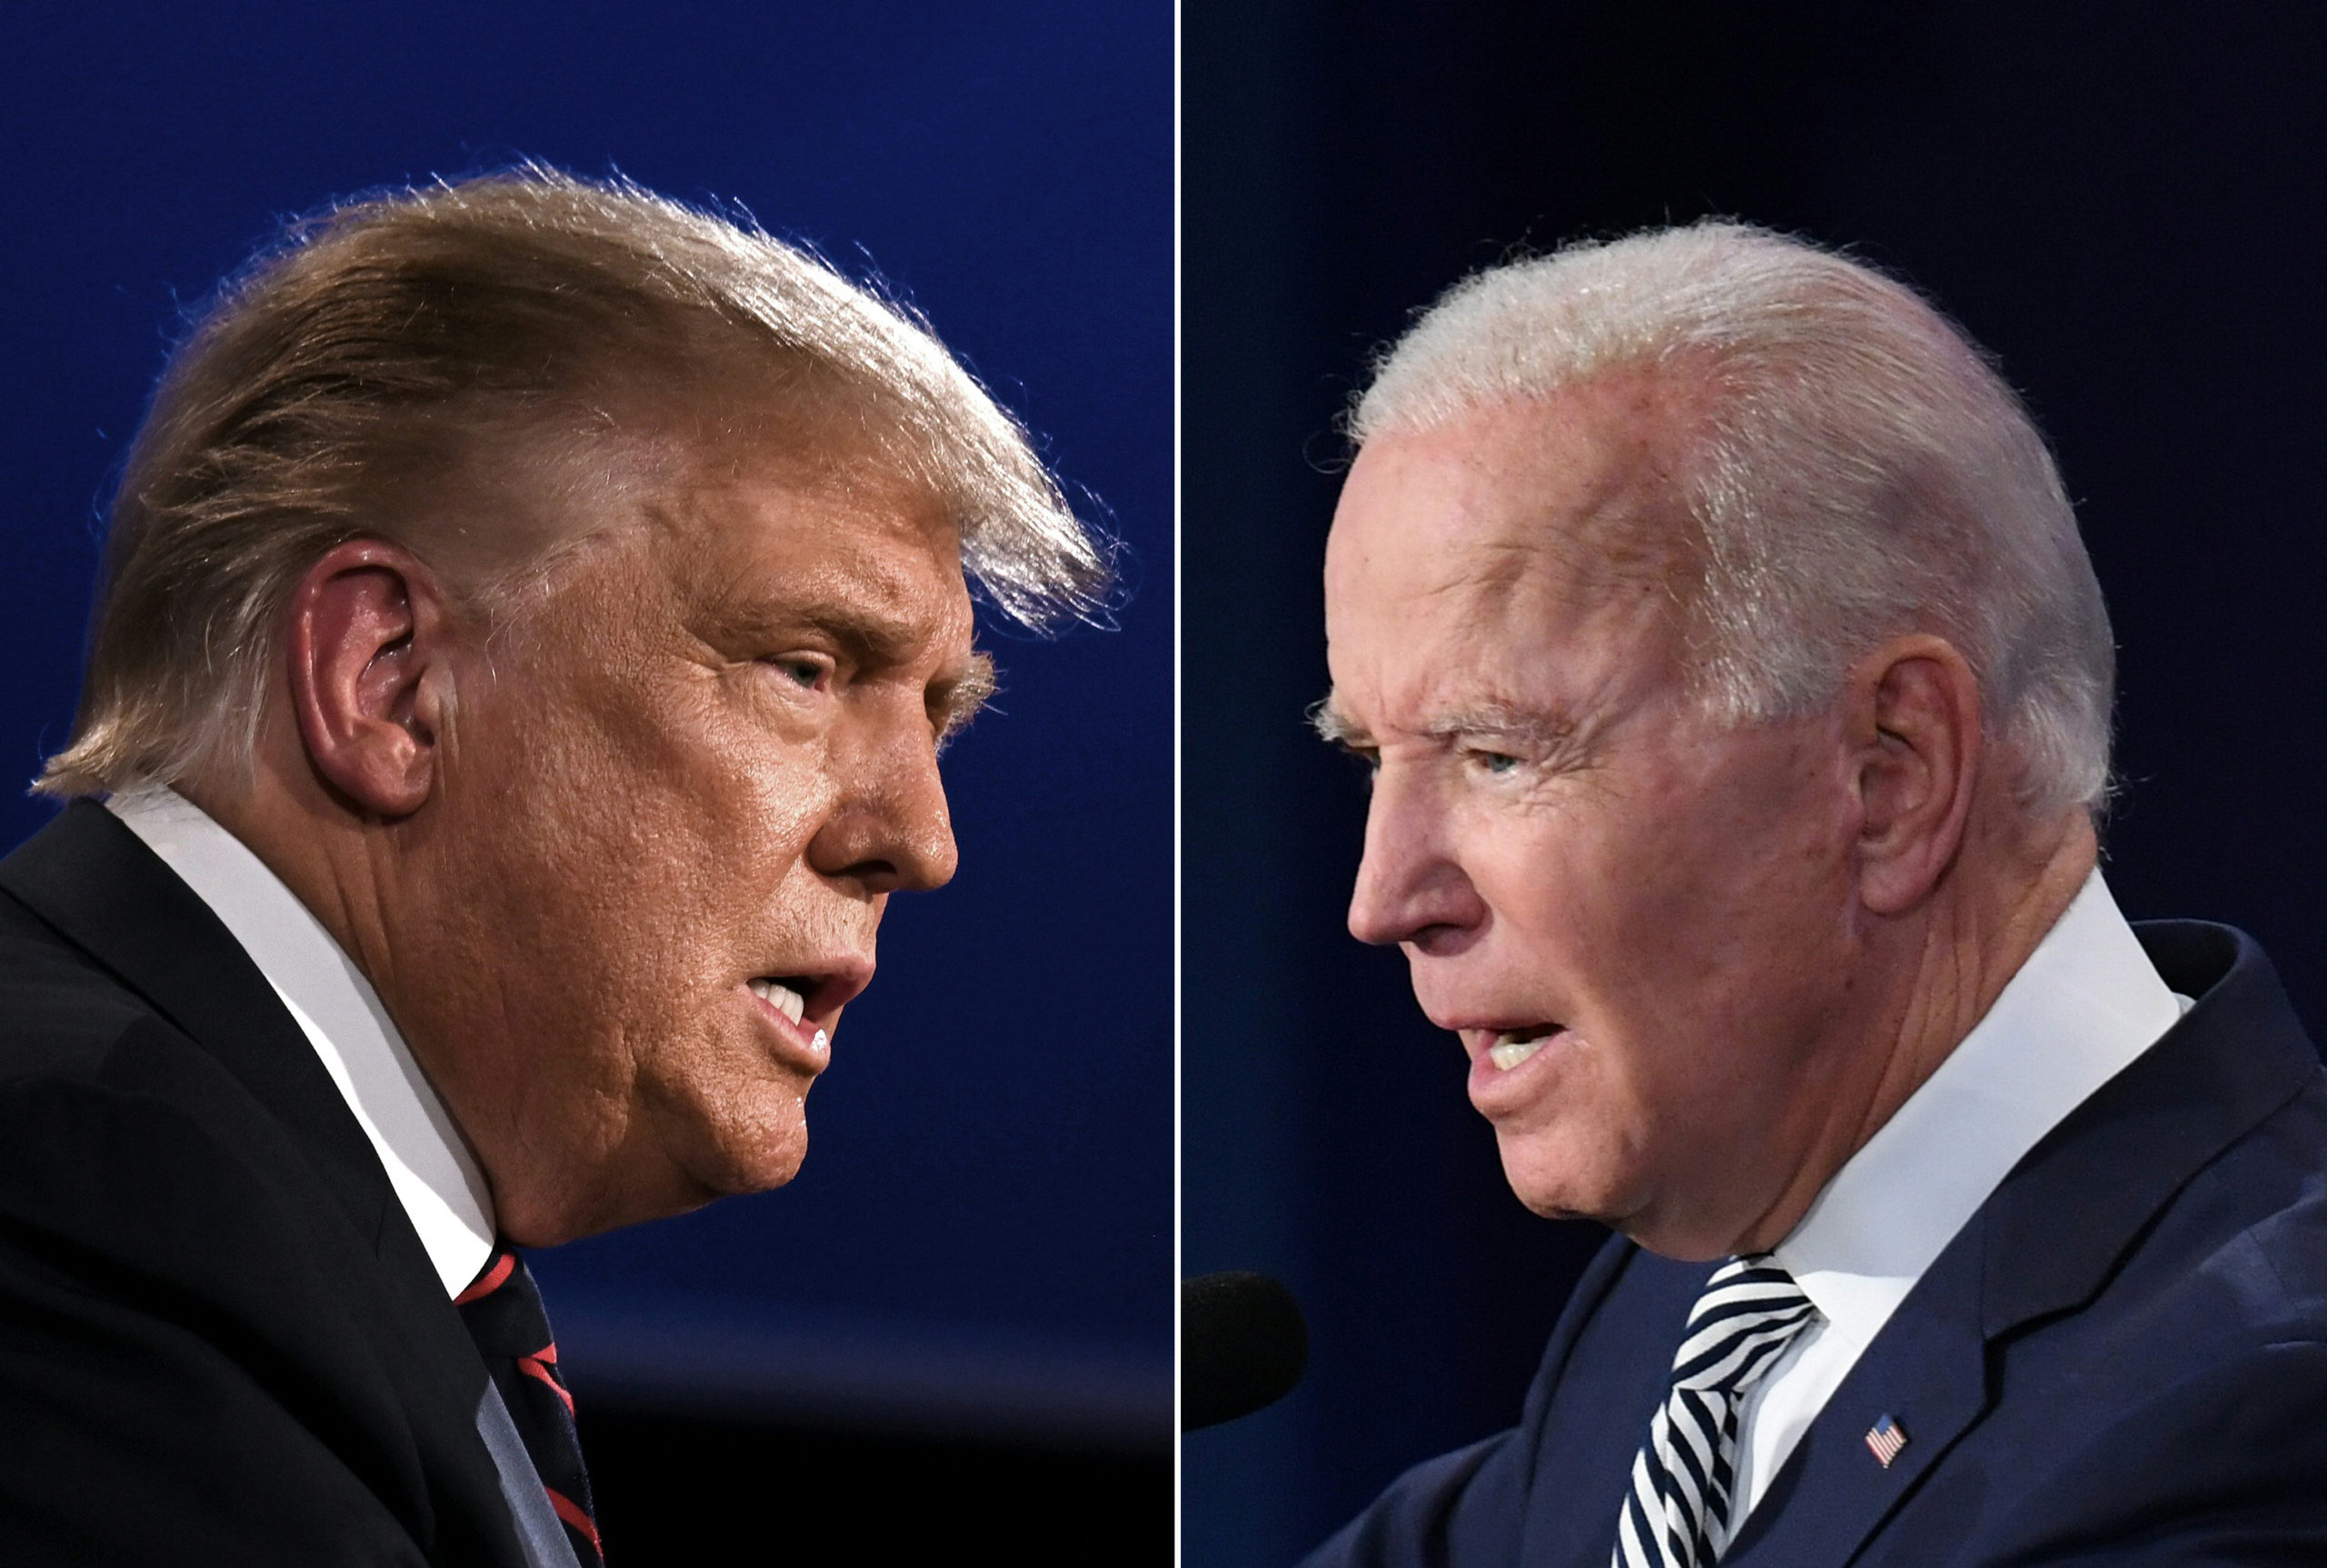 TOPSHOT - (COMBO) This combination of pictures created on September 29, 2020 shows US President Donald Trump (L) and Democratic Presidential candidate former Vice President Joe Biden squaring off during the first presidential debate at the Case Western Reserve University and Cleveland Clinic in Cleveland, Ohio on September 29, 2020. (Photos by JIM WATSON and SAUL LOEB / AFP) (Photo by JIM WATSON,SAUL LOEB/AFP via Getty Images)